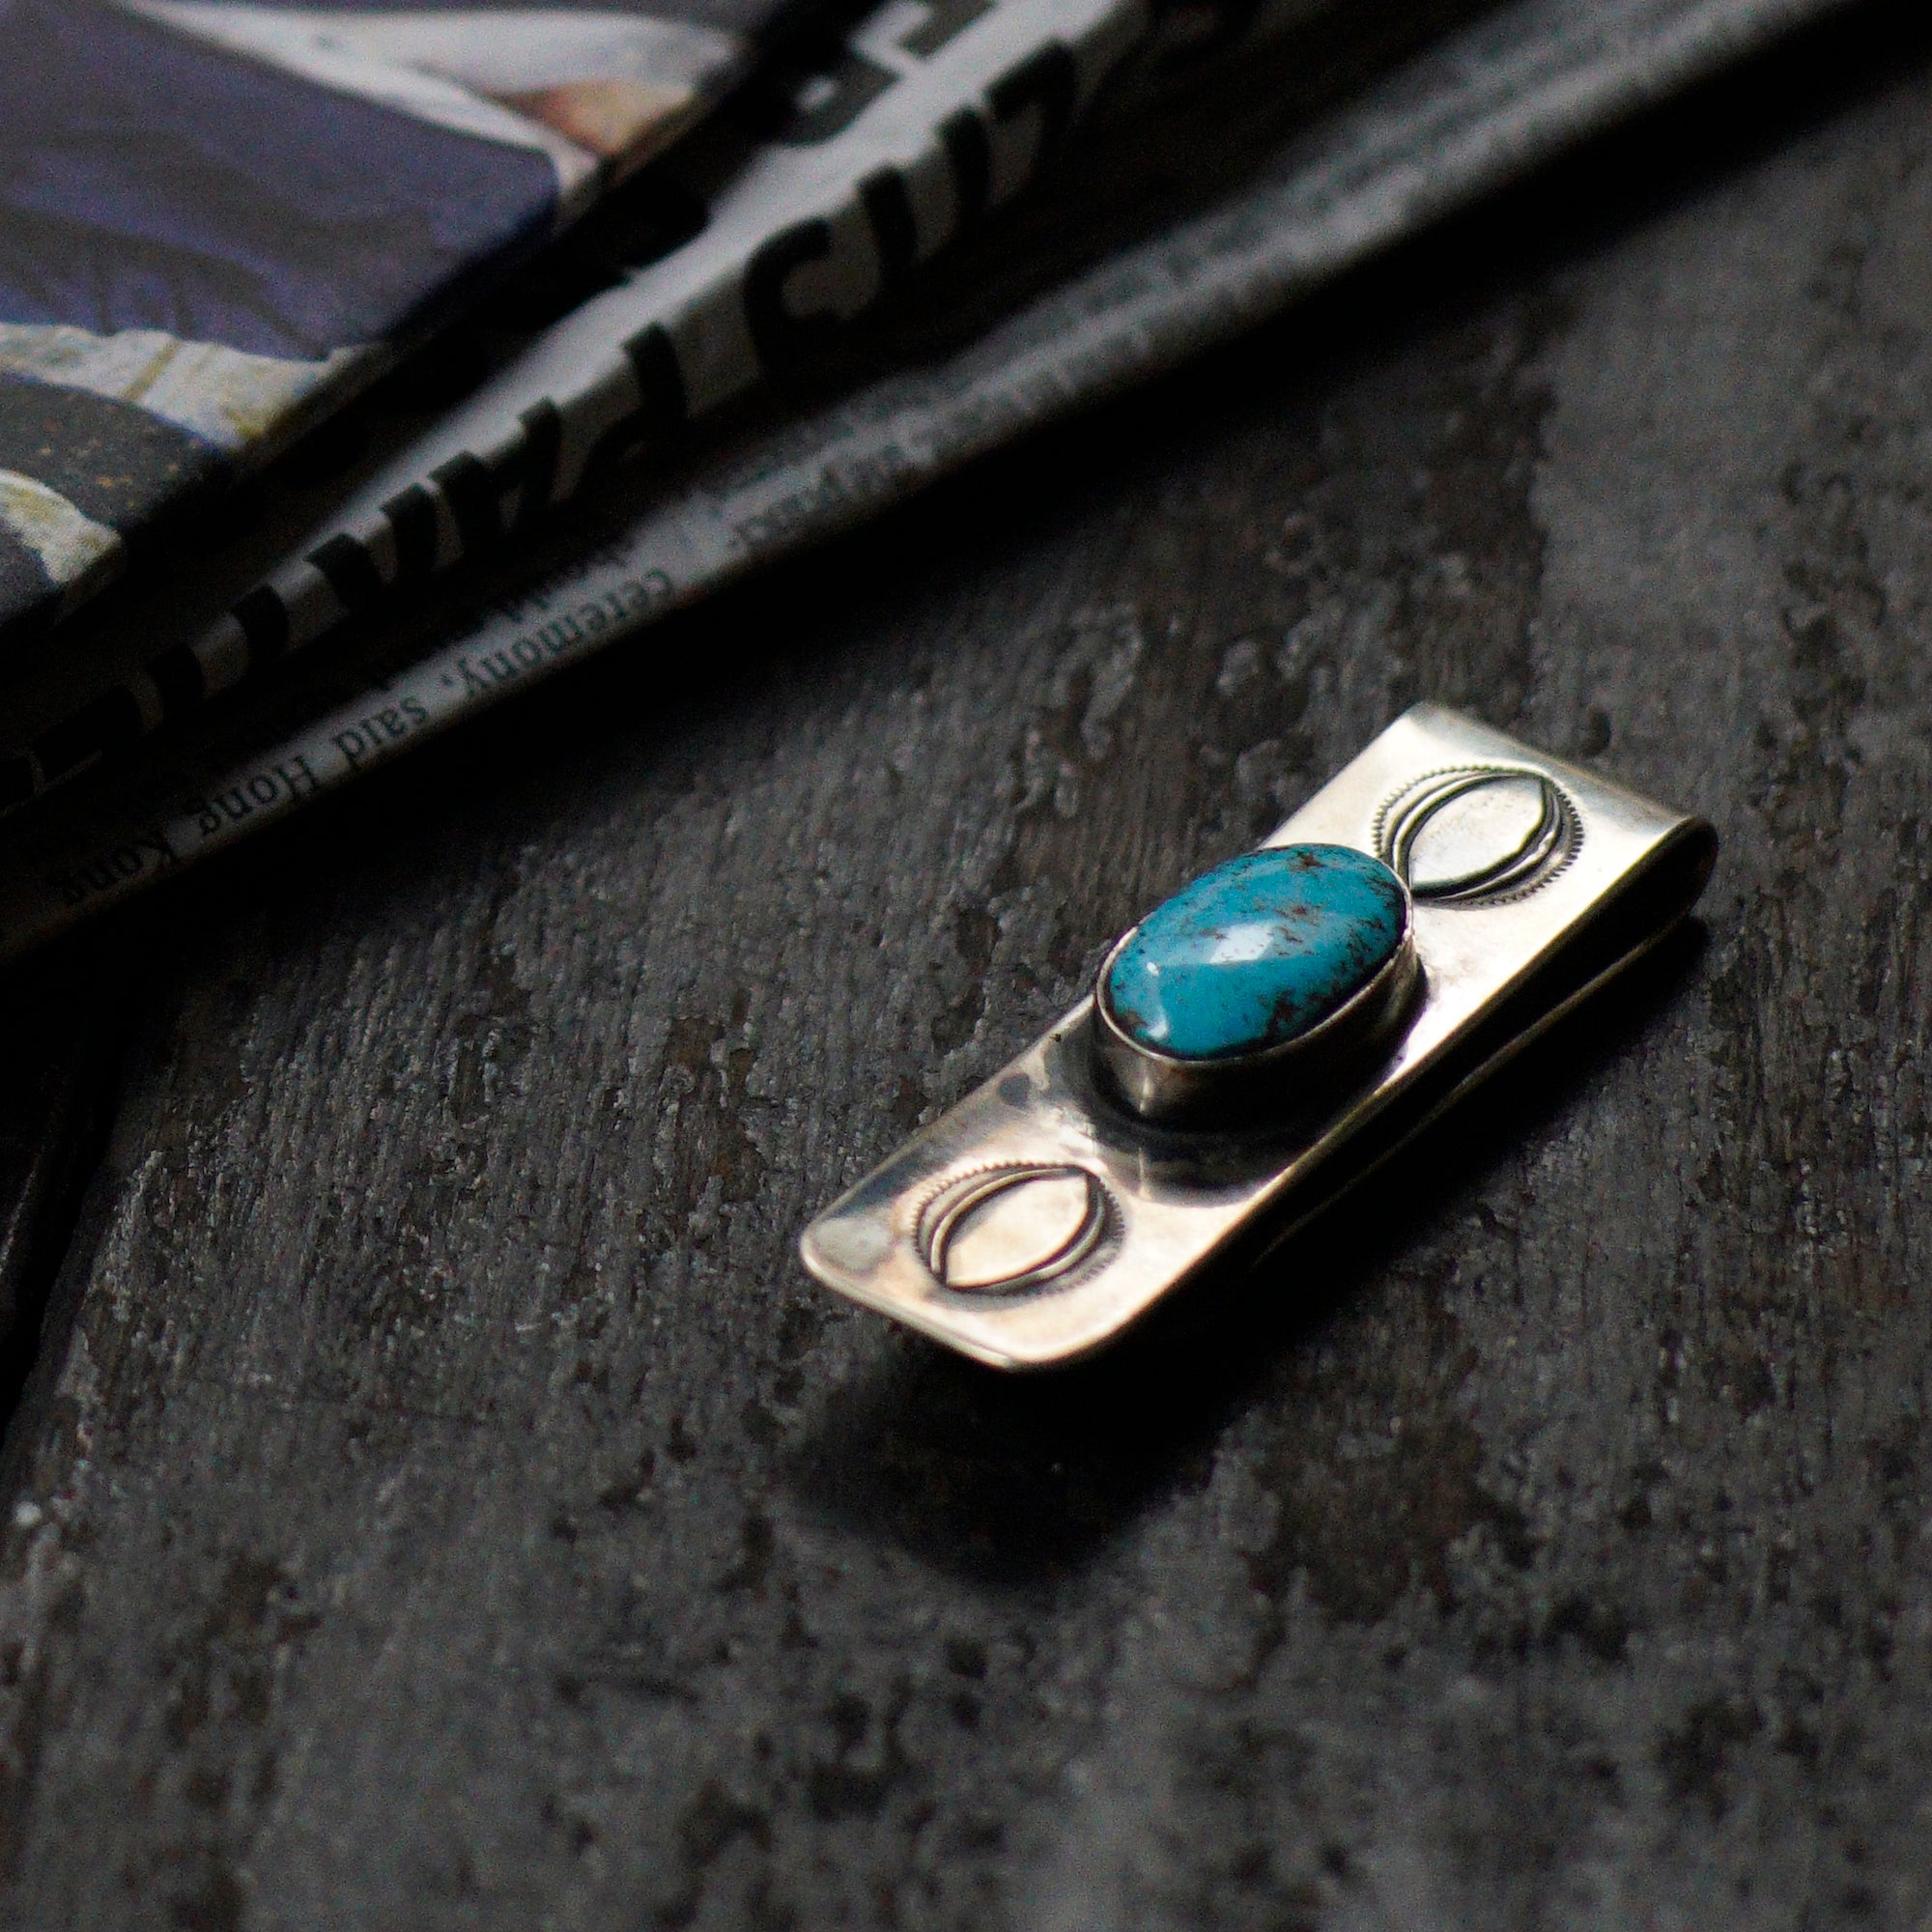 SPECIAL - Red Rabbit Ingot Silver Money Clip with Abalone Stamping and Oval Turquoise Stone (RRMC10)